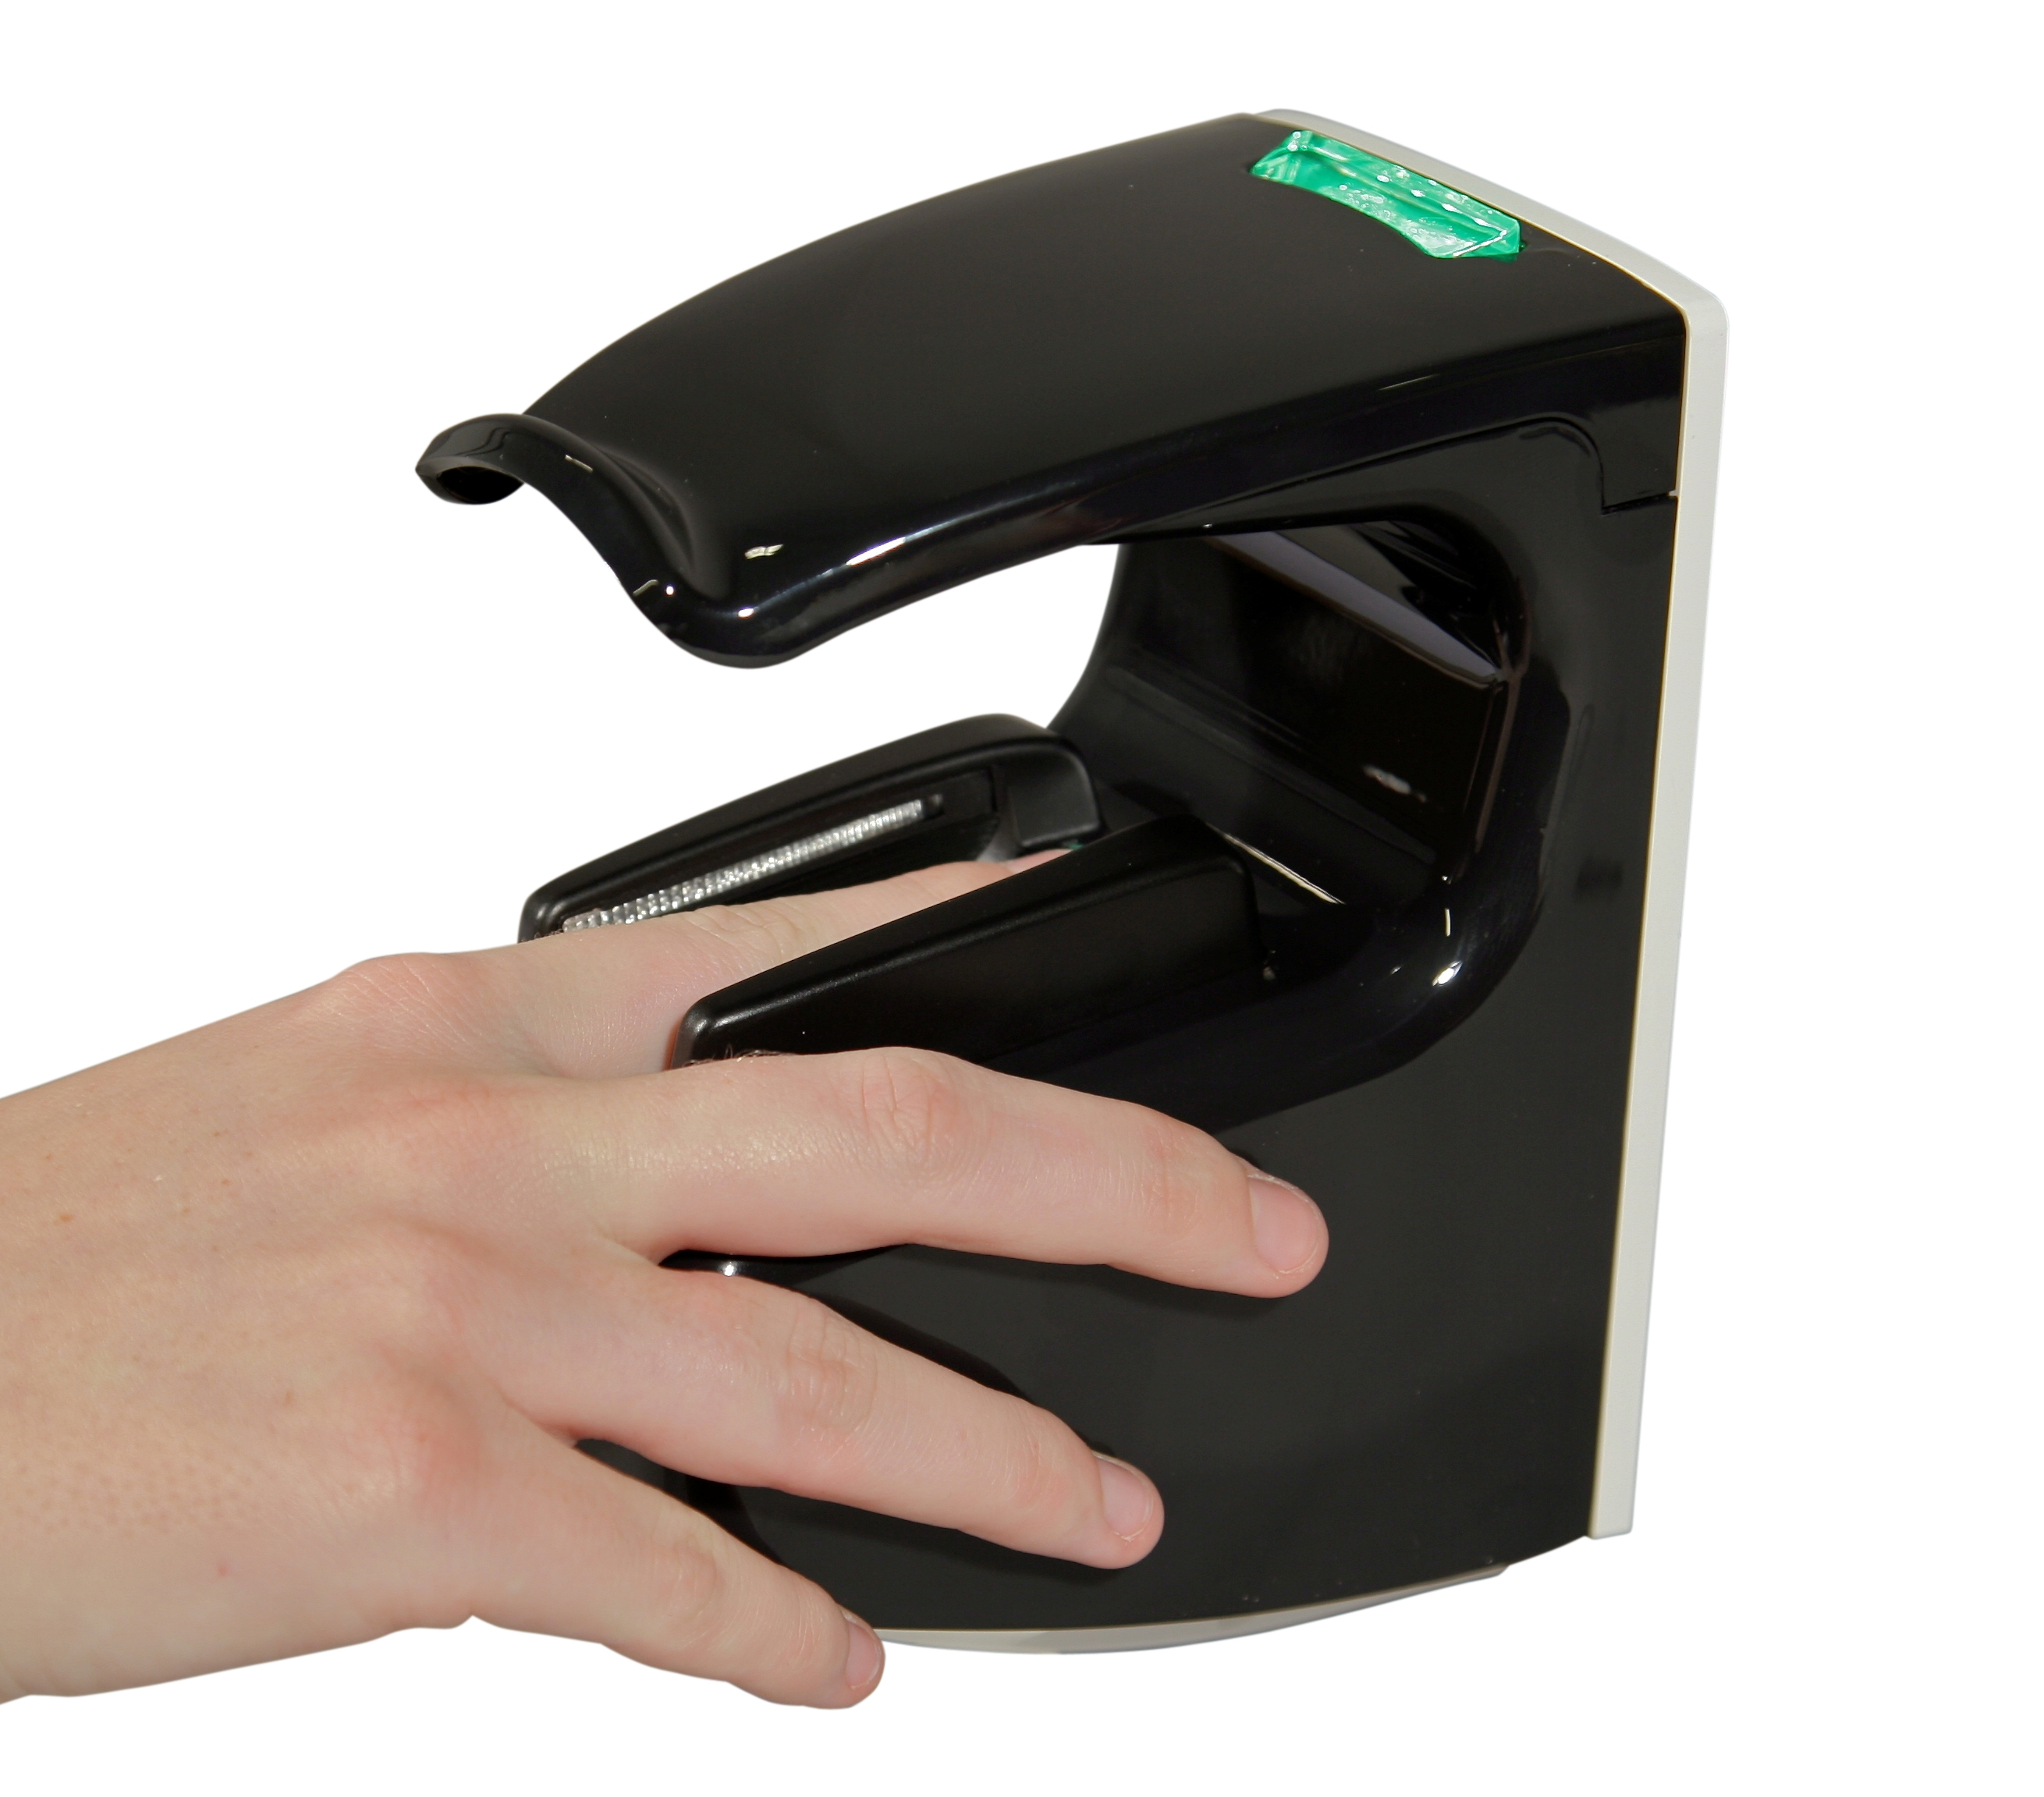 500-297 Finger Vein & Finger Print Biometric